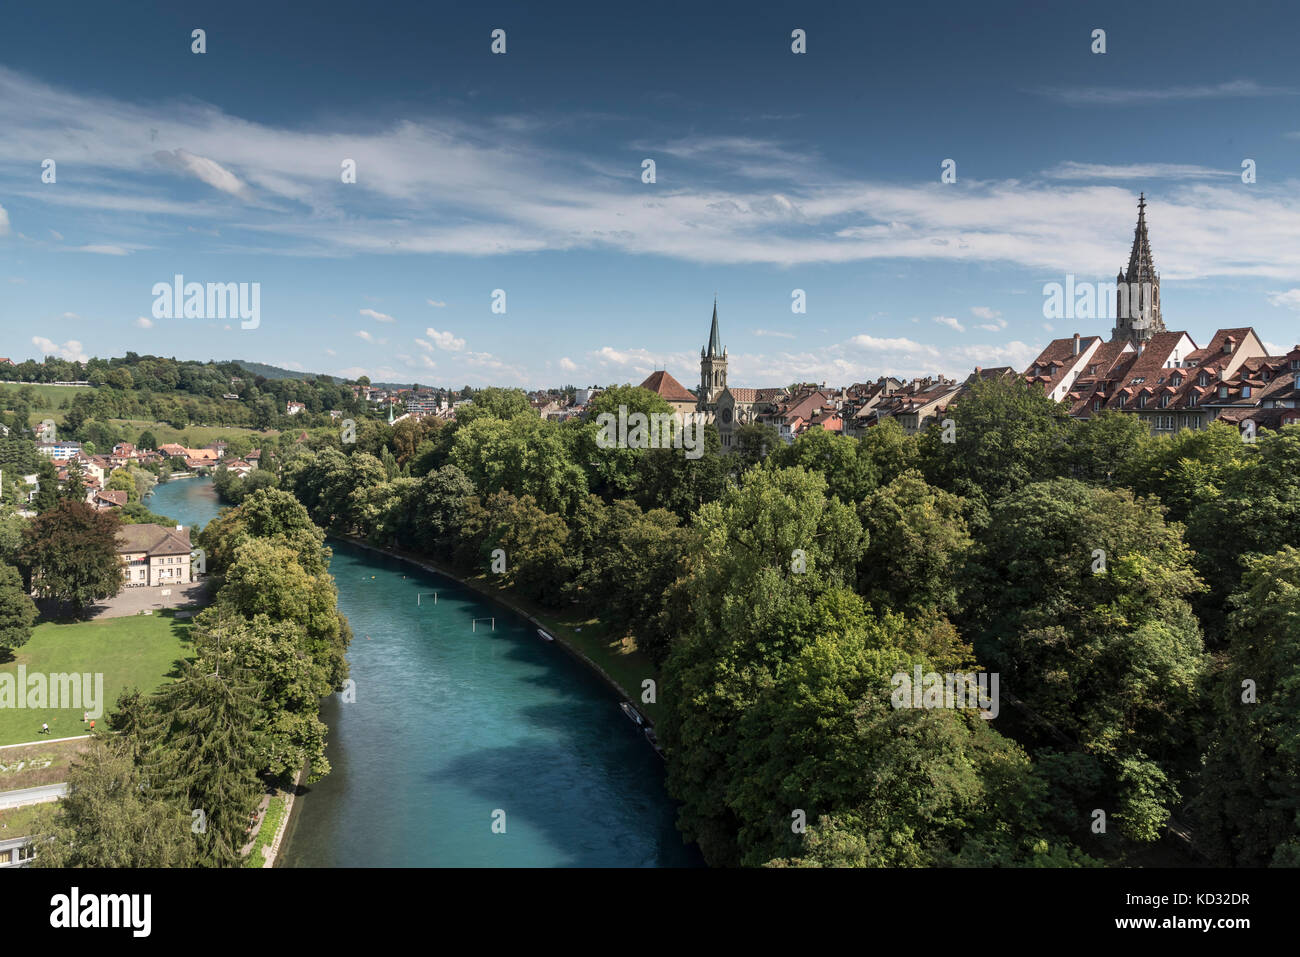 Elevated view of tree lined Aare river, Bern, Switzerland, Europe - Stock Image